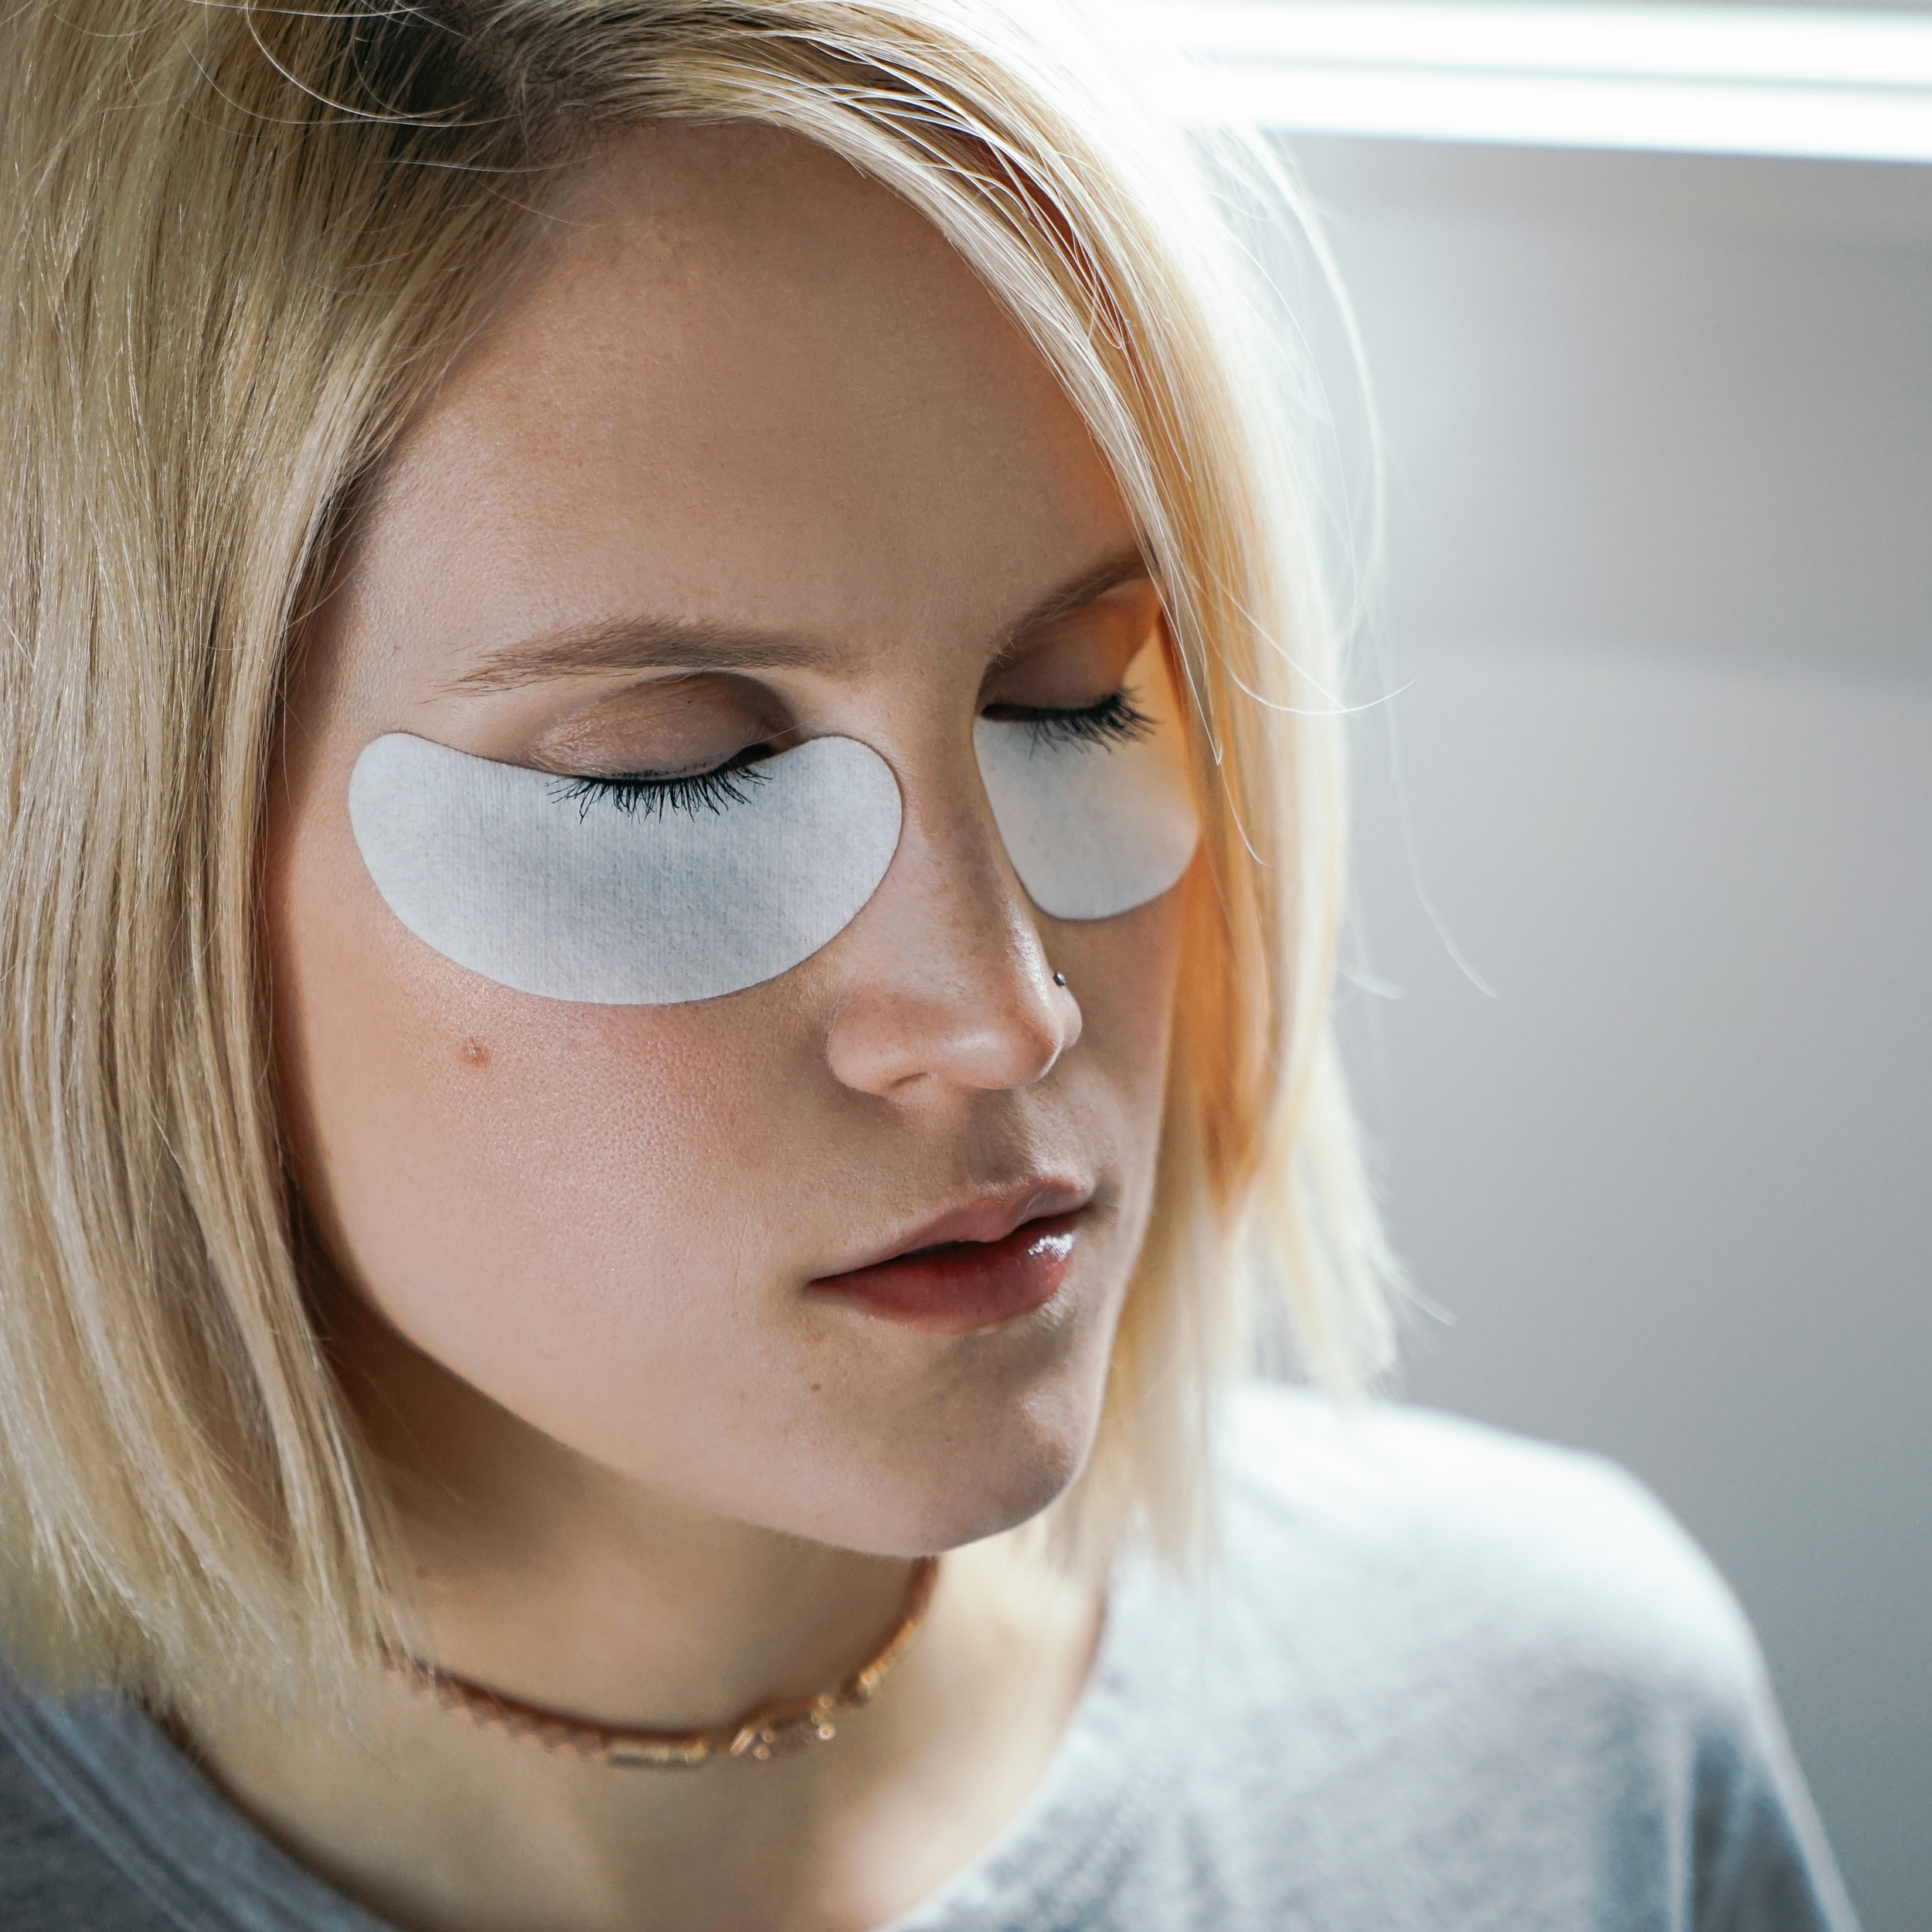 Product Review VIIcode O2M Oxygen Eye Pad